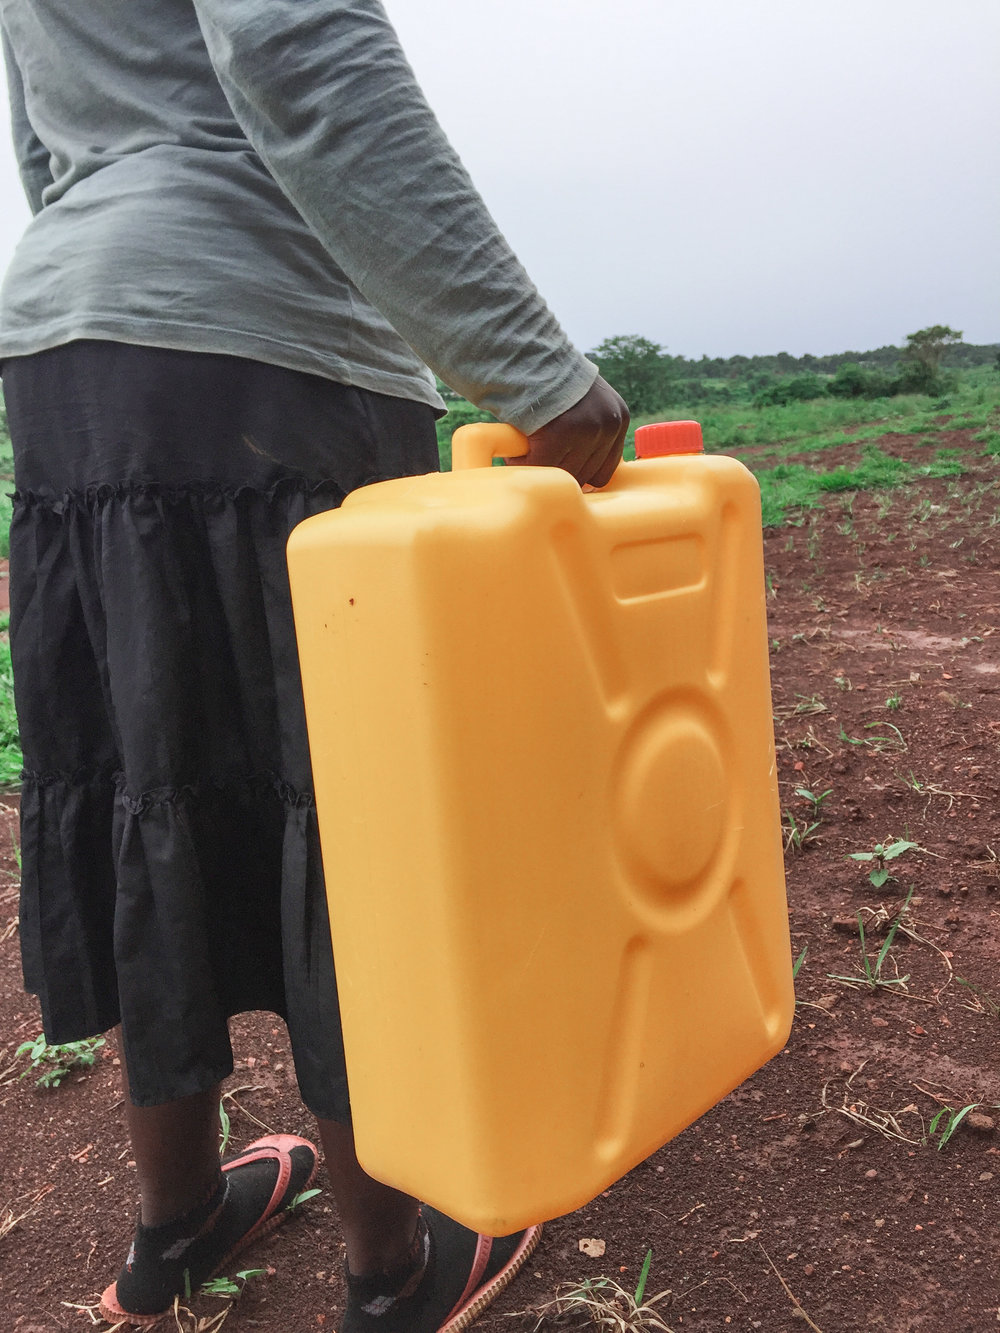 A jerry can used for fetching water in the village. When filled, they are very heavy and difficult to carry for long distances.